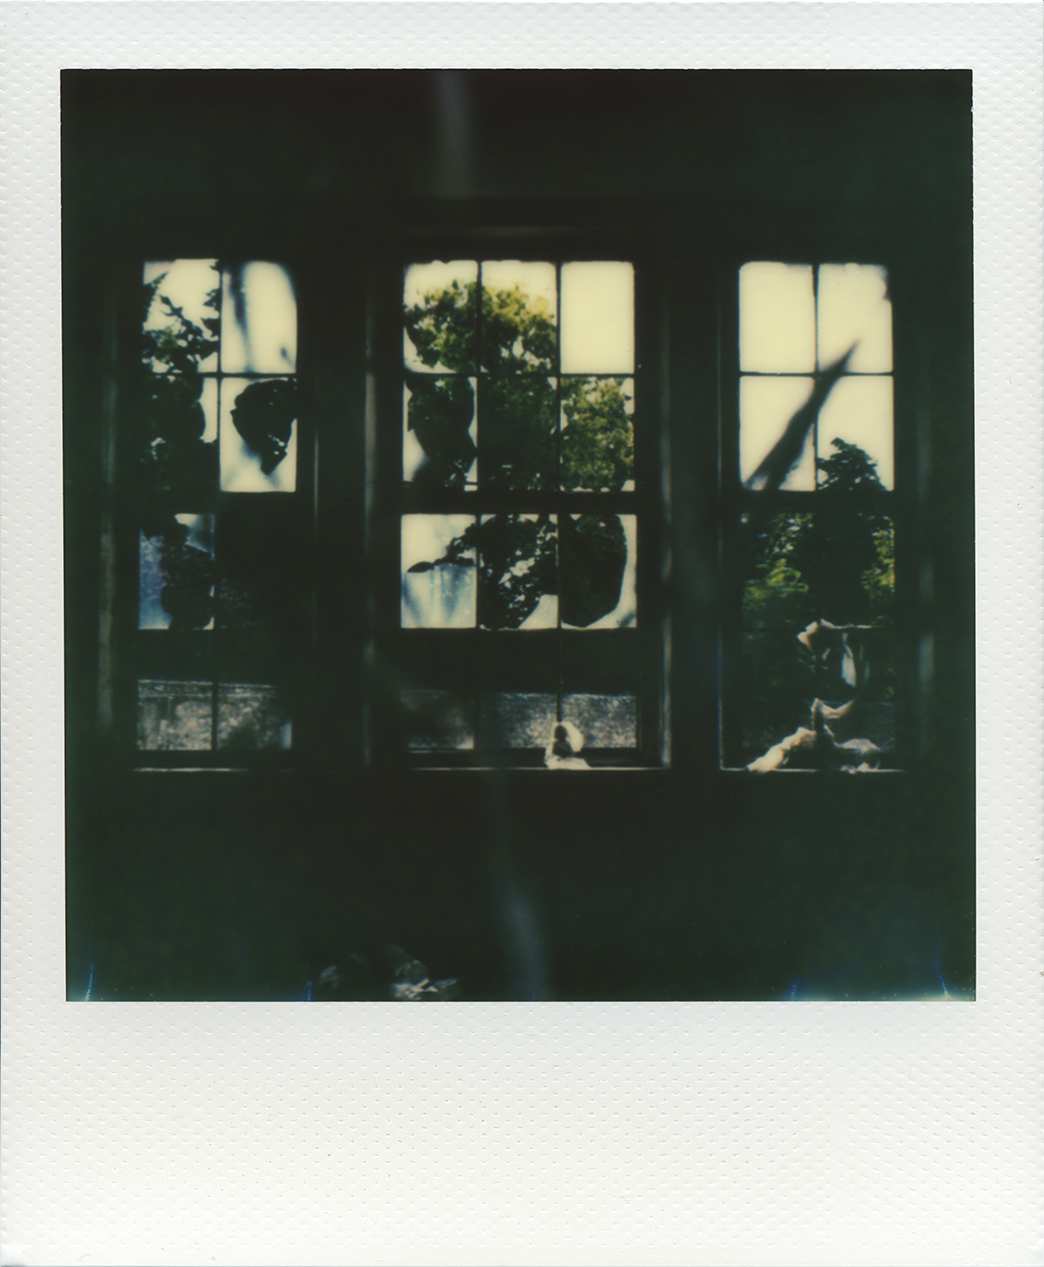 Pola windows 01